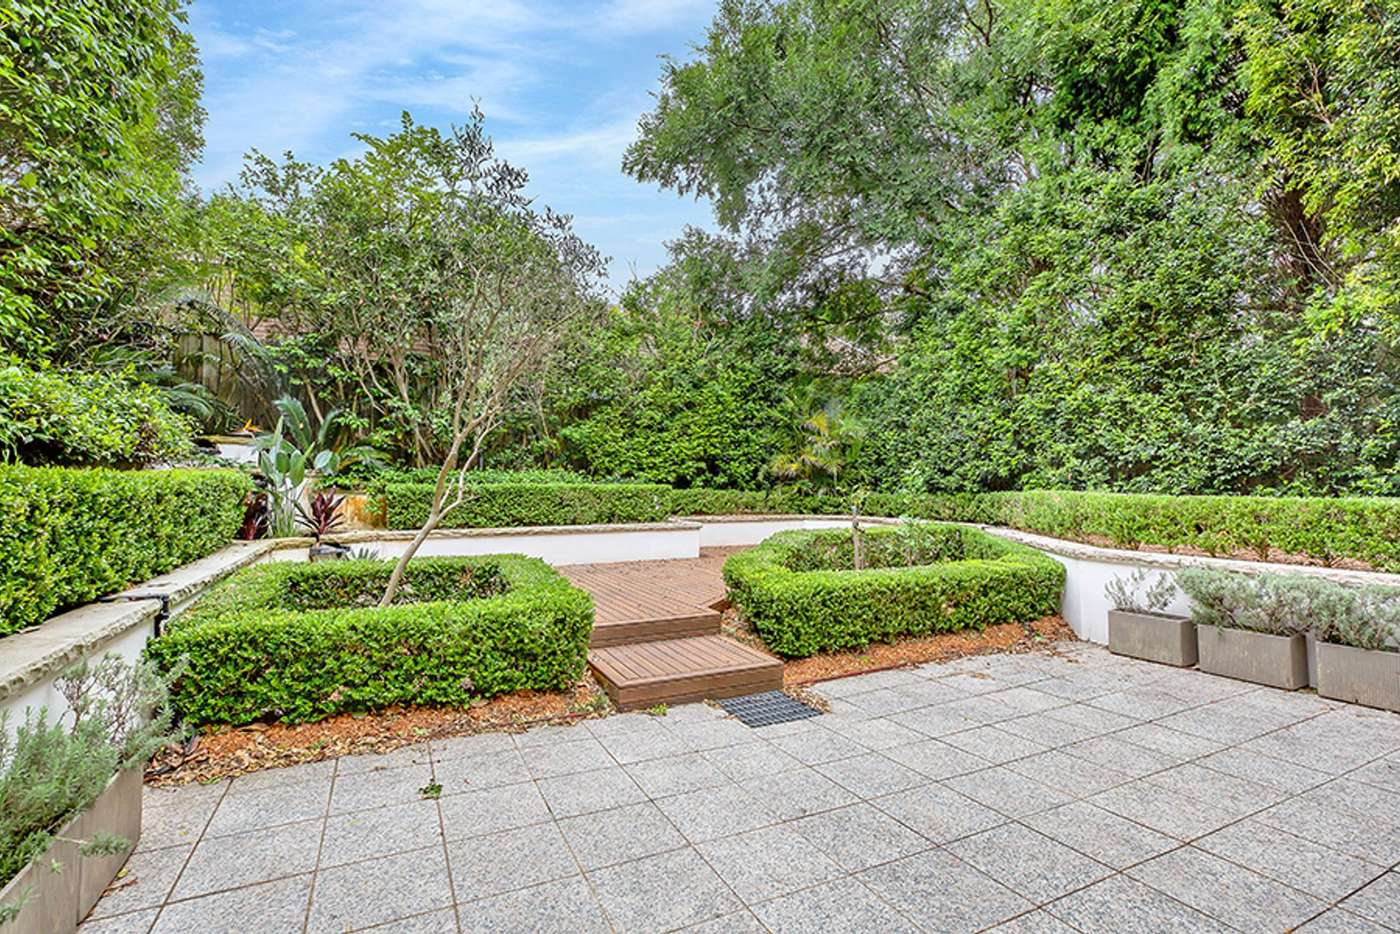 Main view of Homely apartment listing, 2/12 Hamilton Street, Rose Bay NSW 2029